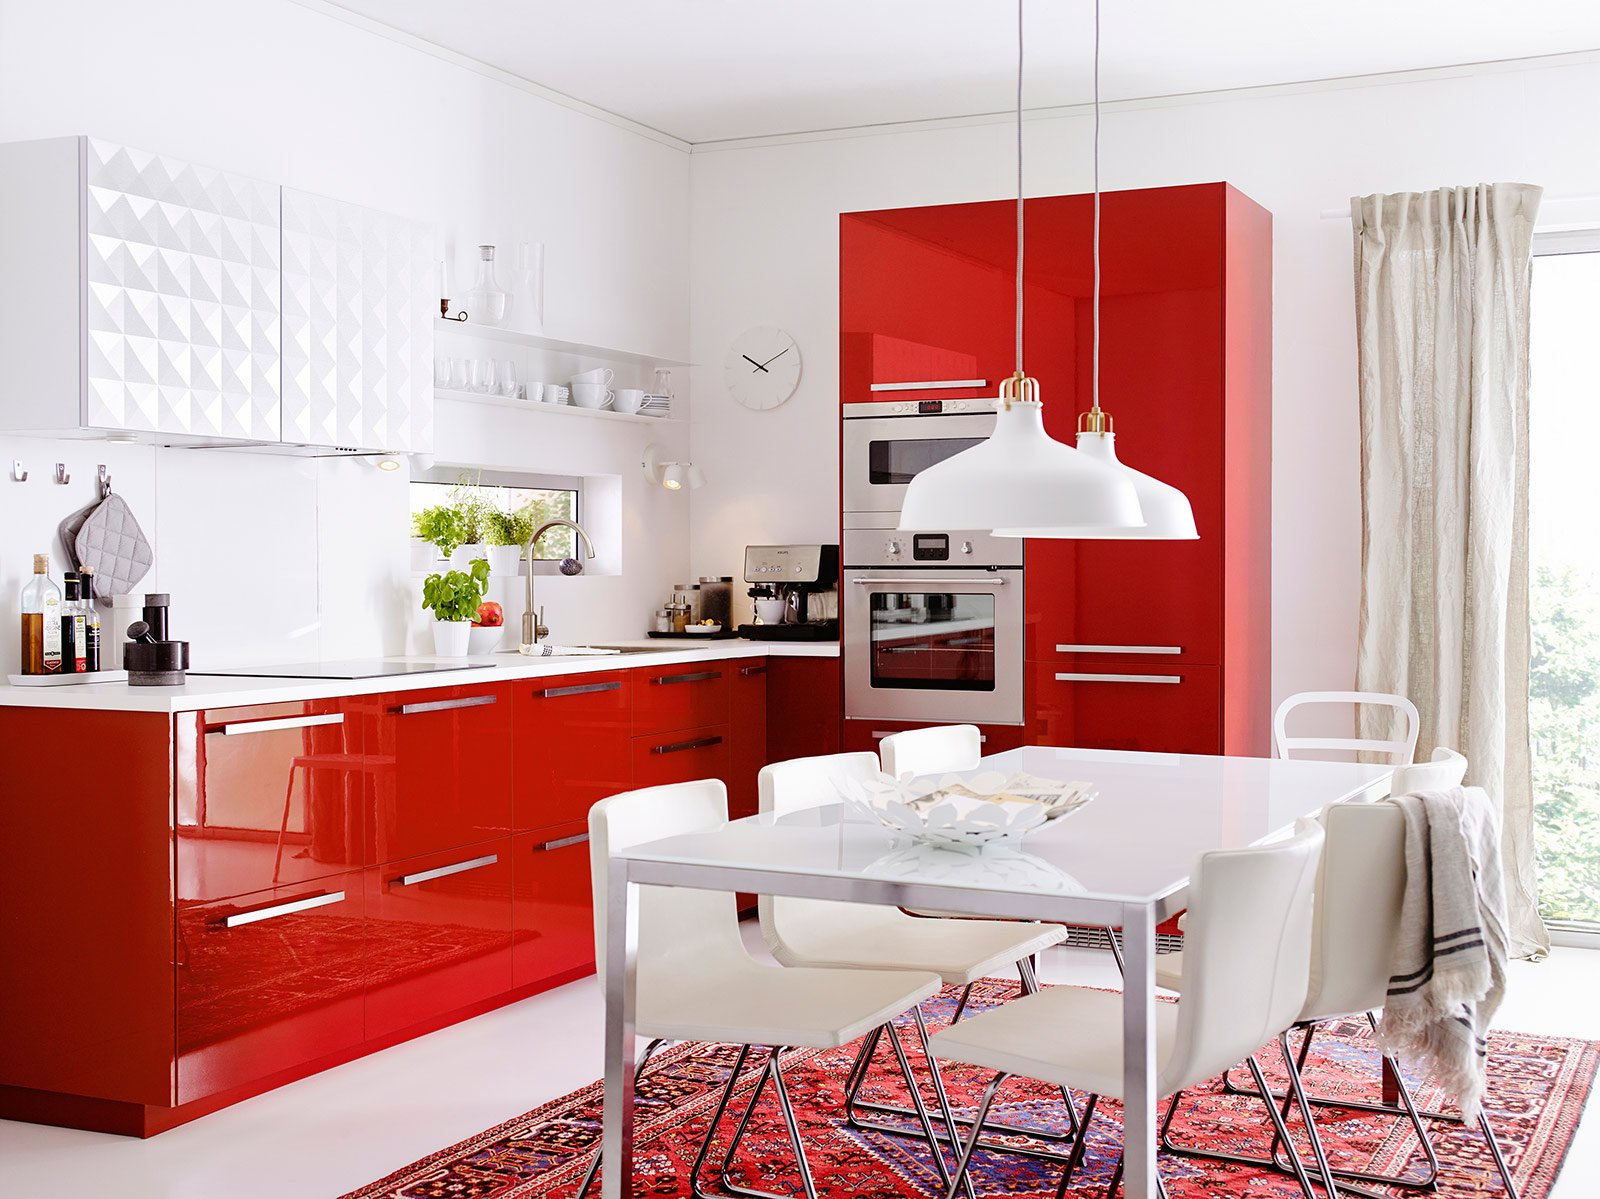 Cucine colorate come un quadro contemporaneo cose di casa for Decoration interieur bibelot